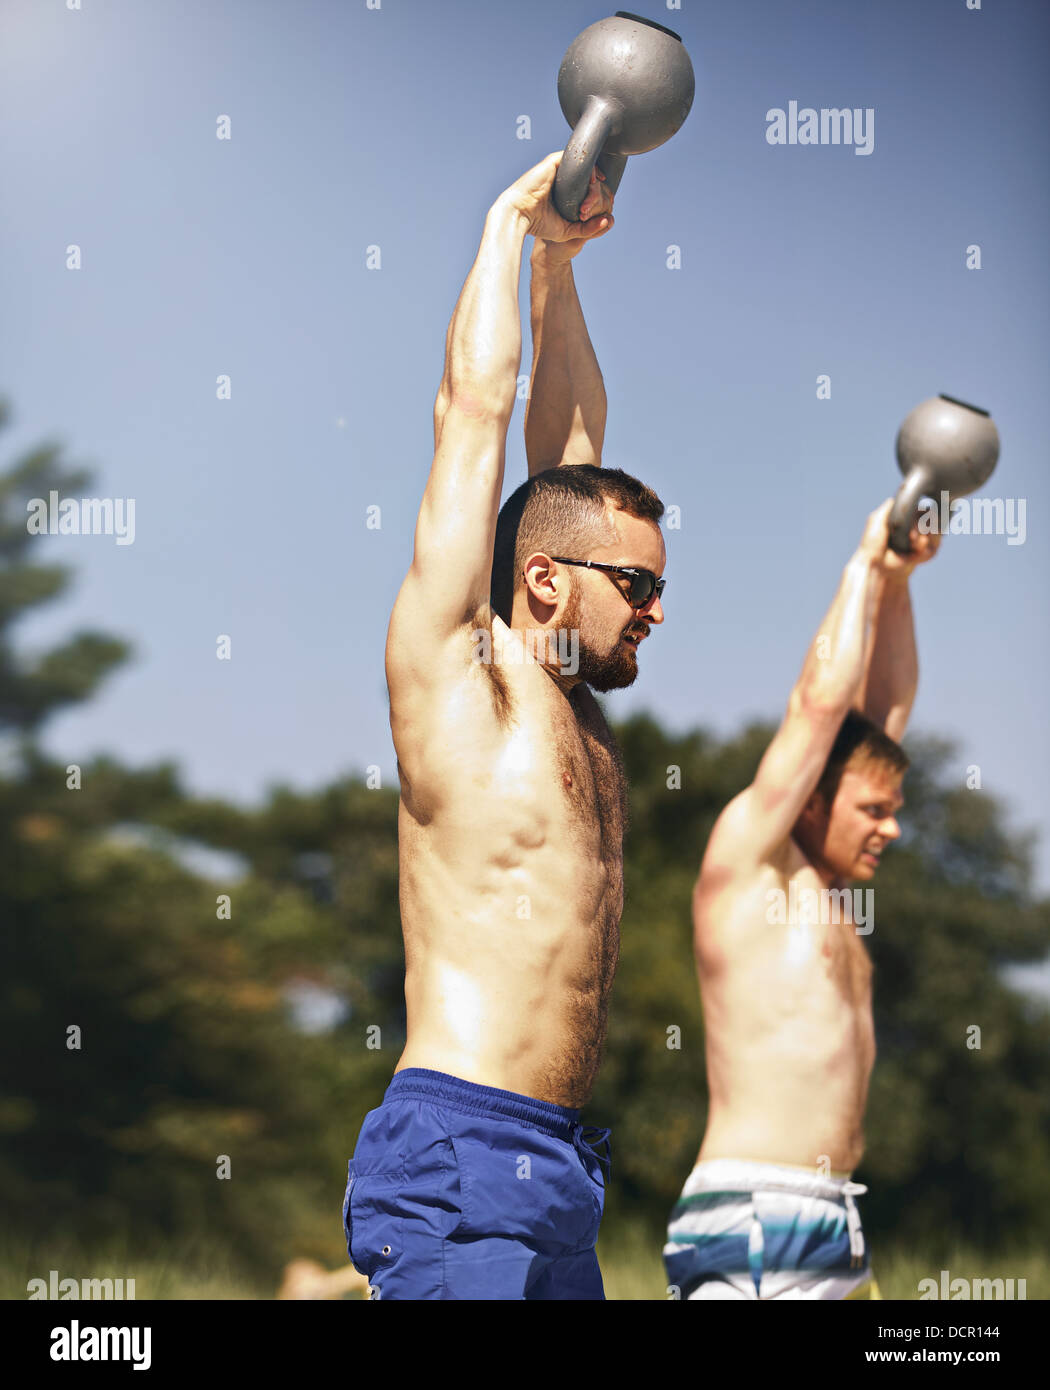 Two strong young men lifting heavy kettlebell weights - Stock Image